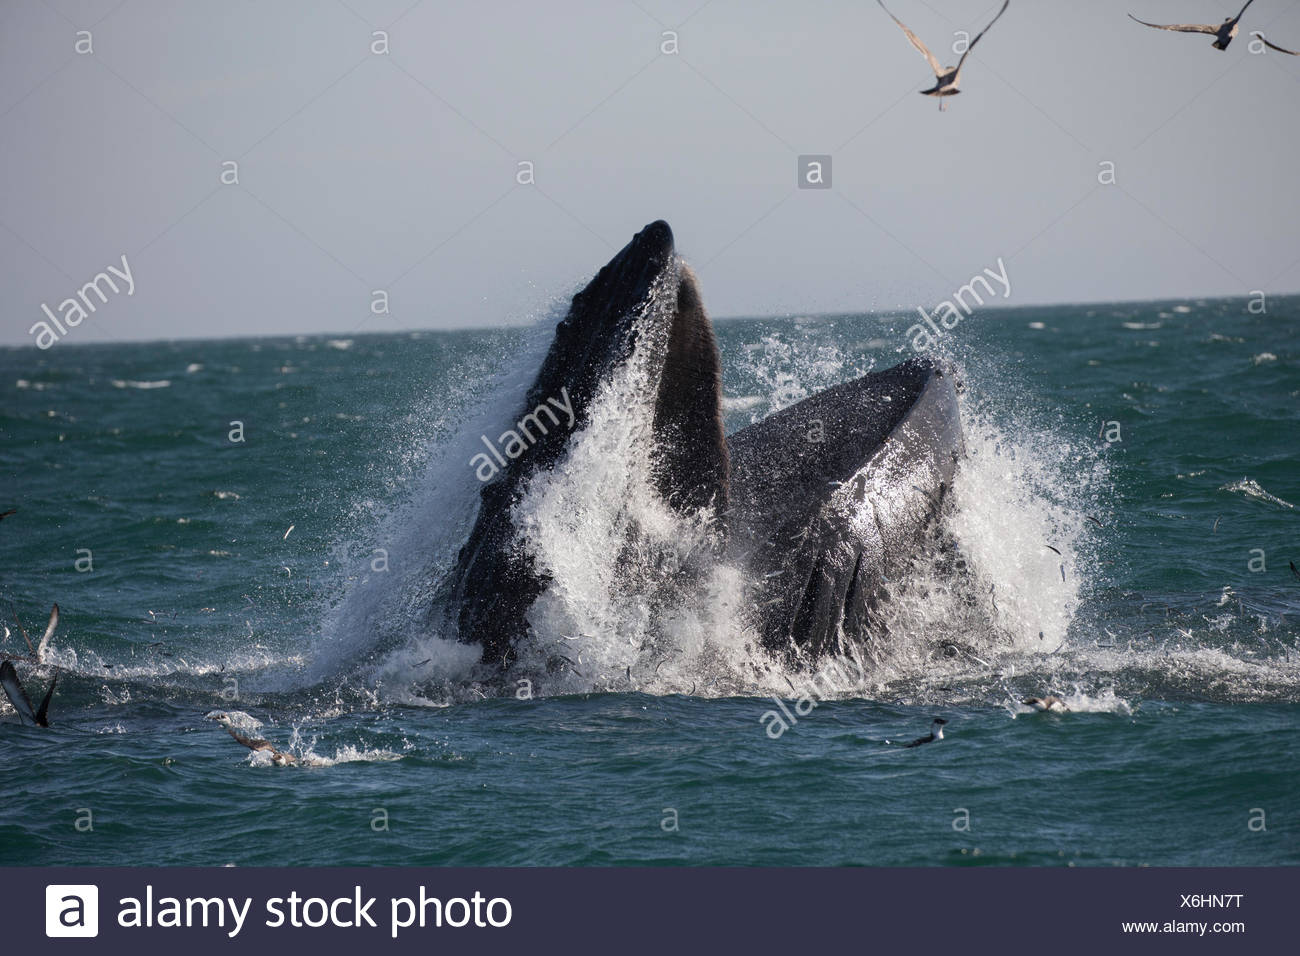 A humpback whale feasts on fish that have congregated in the warm waters of Monterey Bay, California. - Stock Image